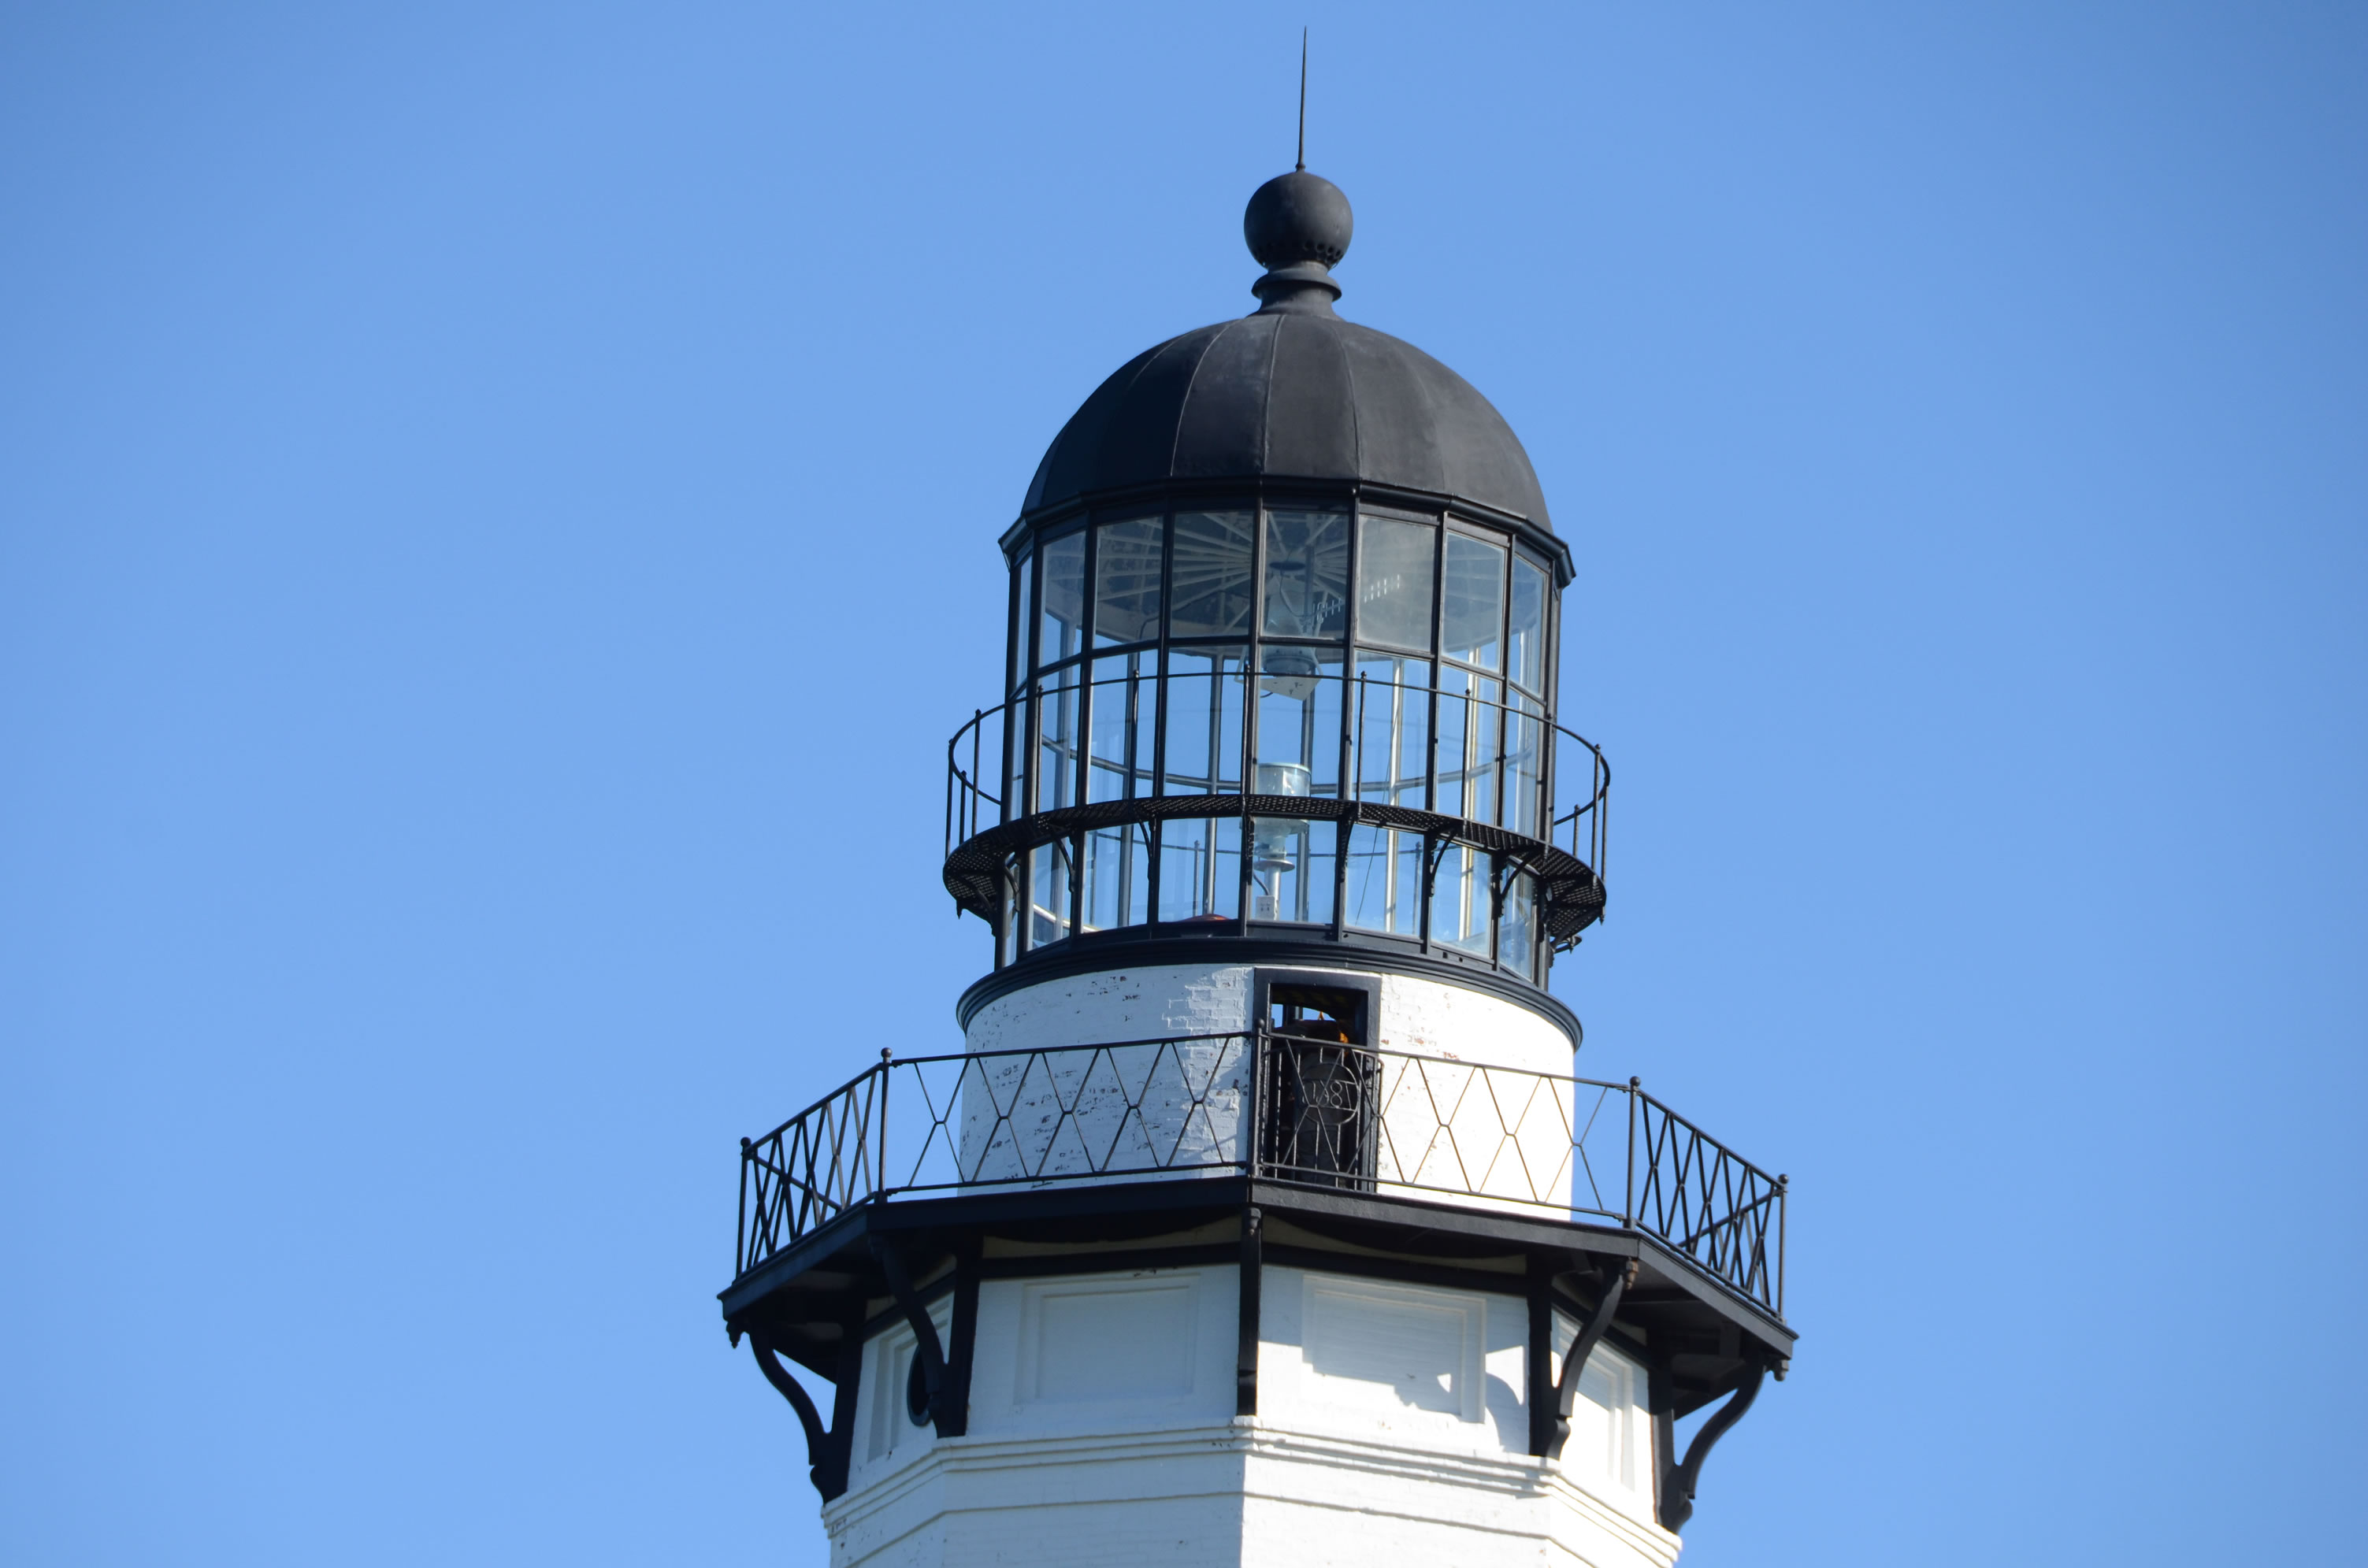 Close up of the light at Montauk